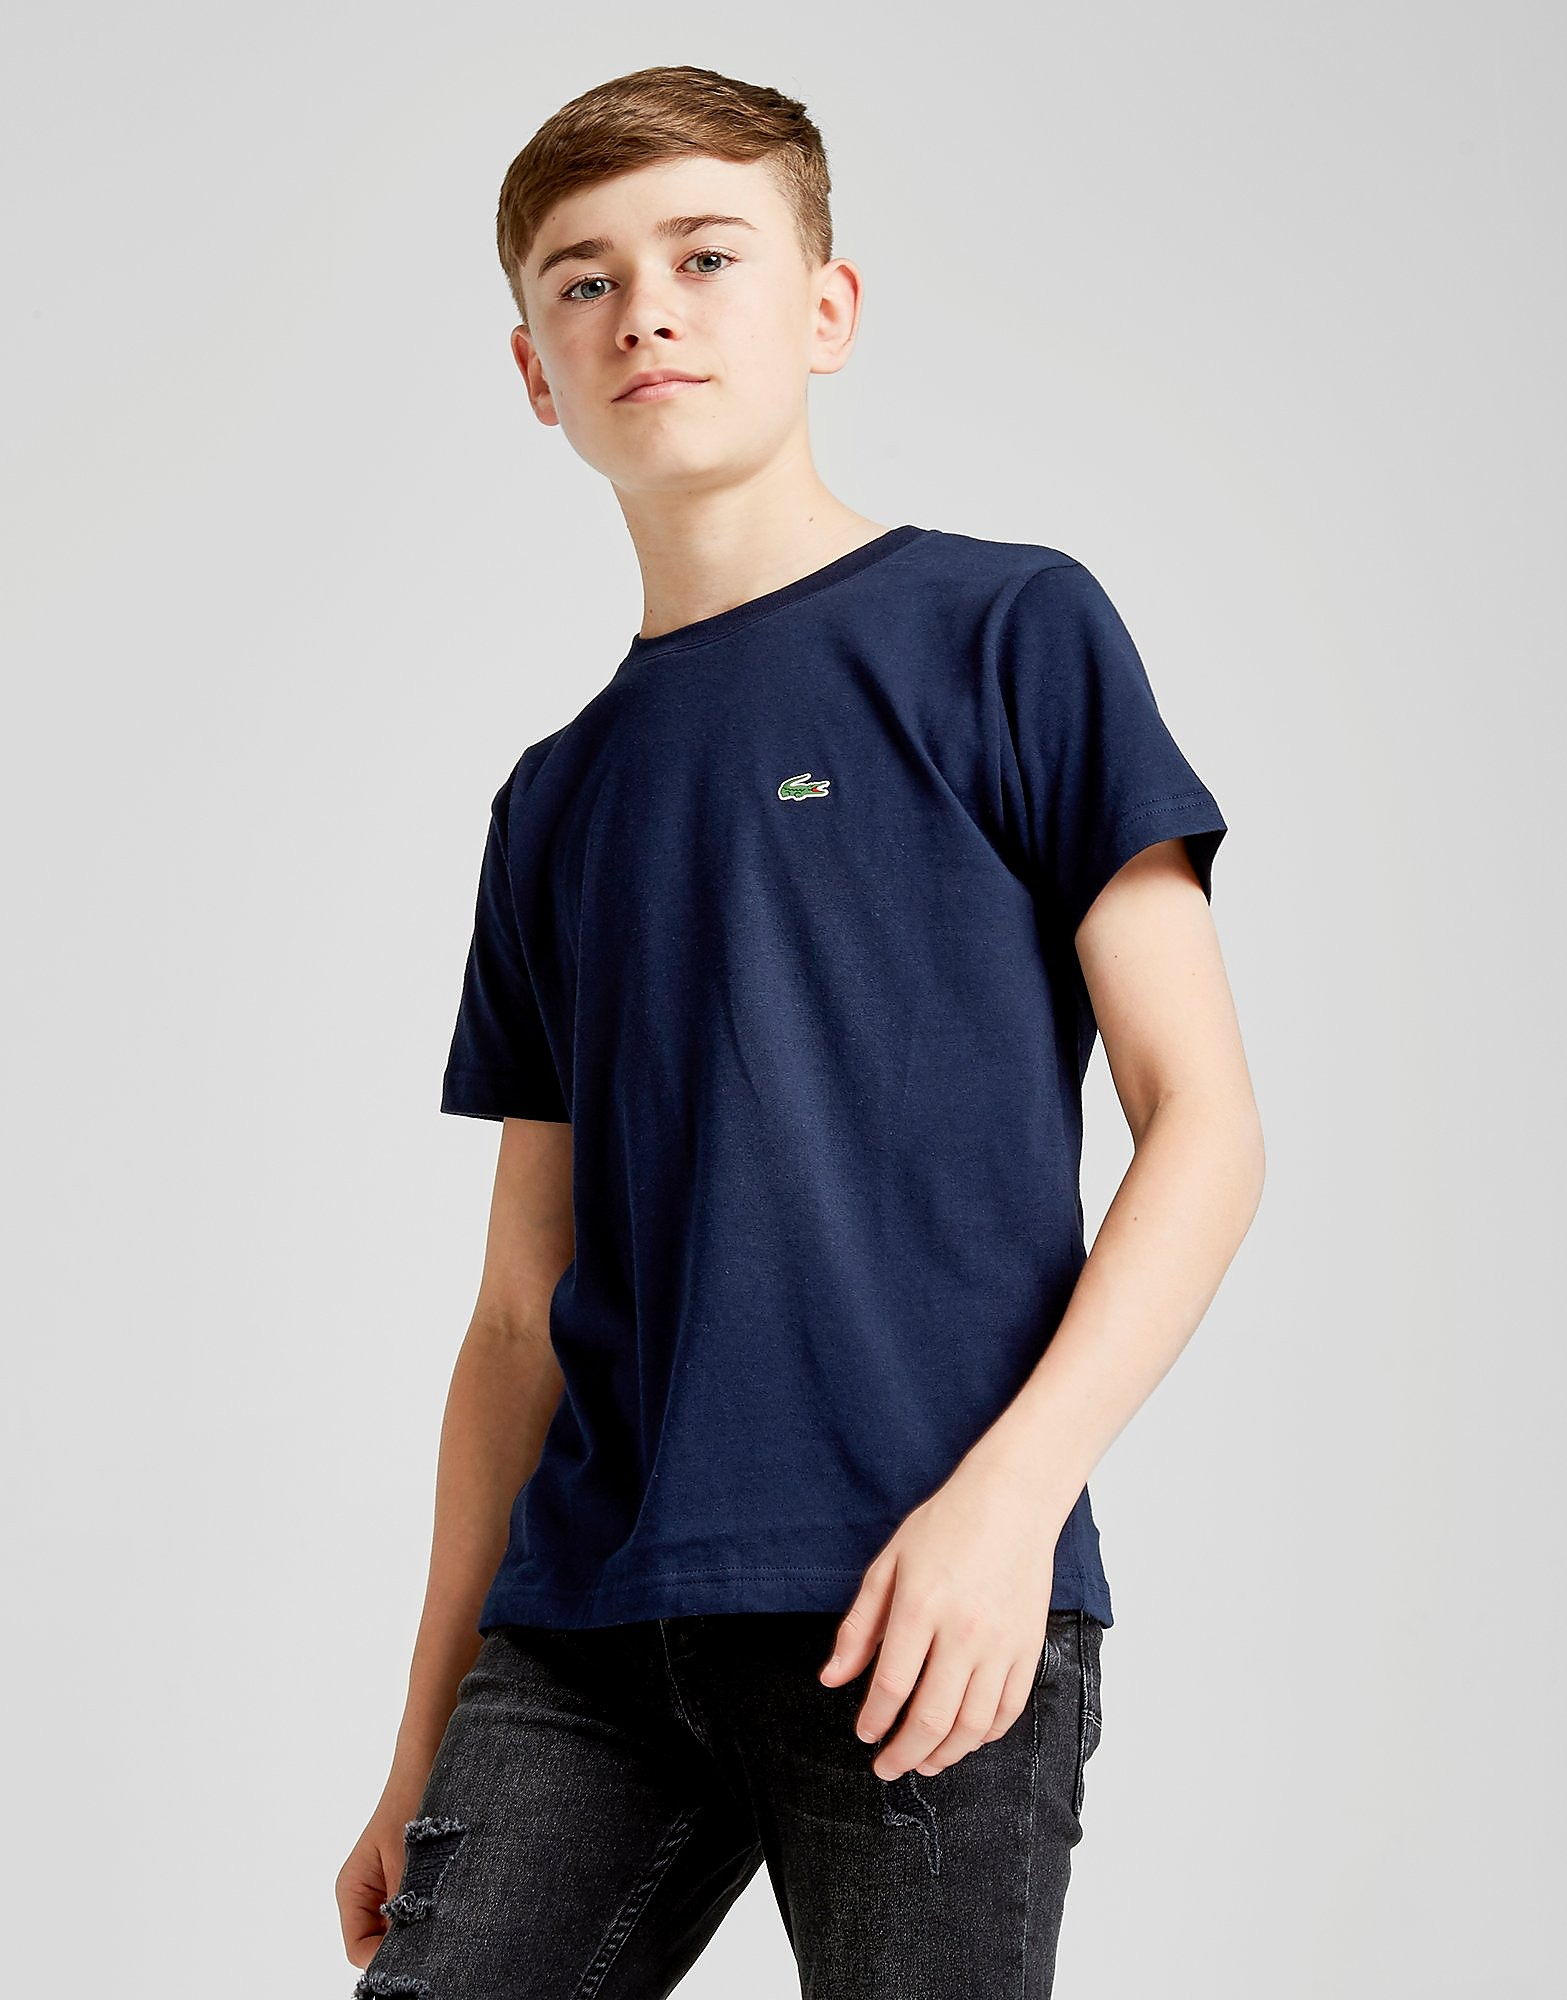 Lacoste Small Logo T-Shirt Junior - Blauw - Kind